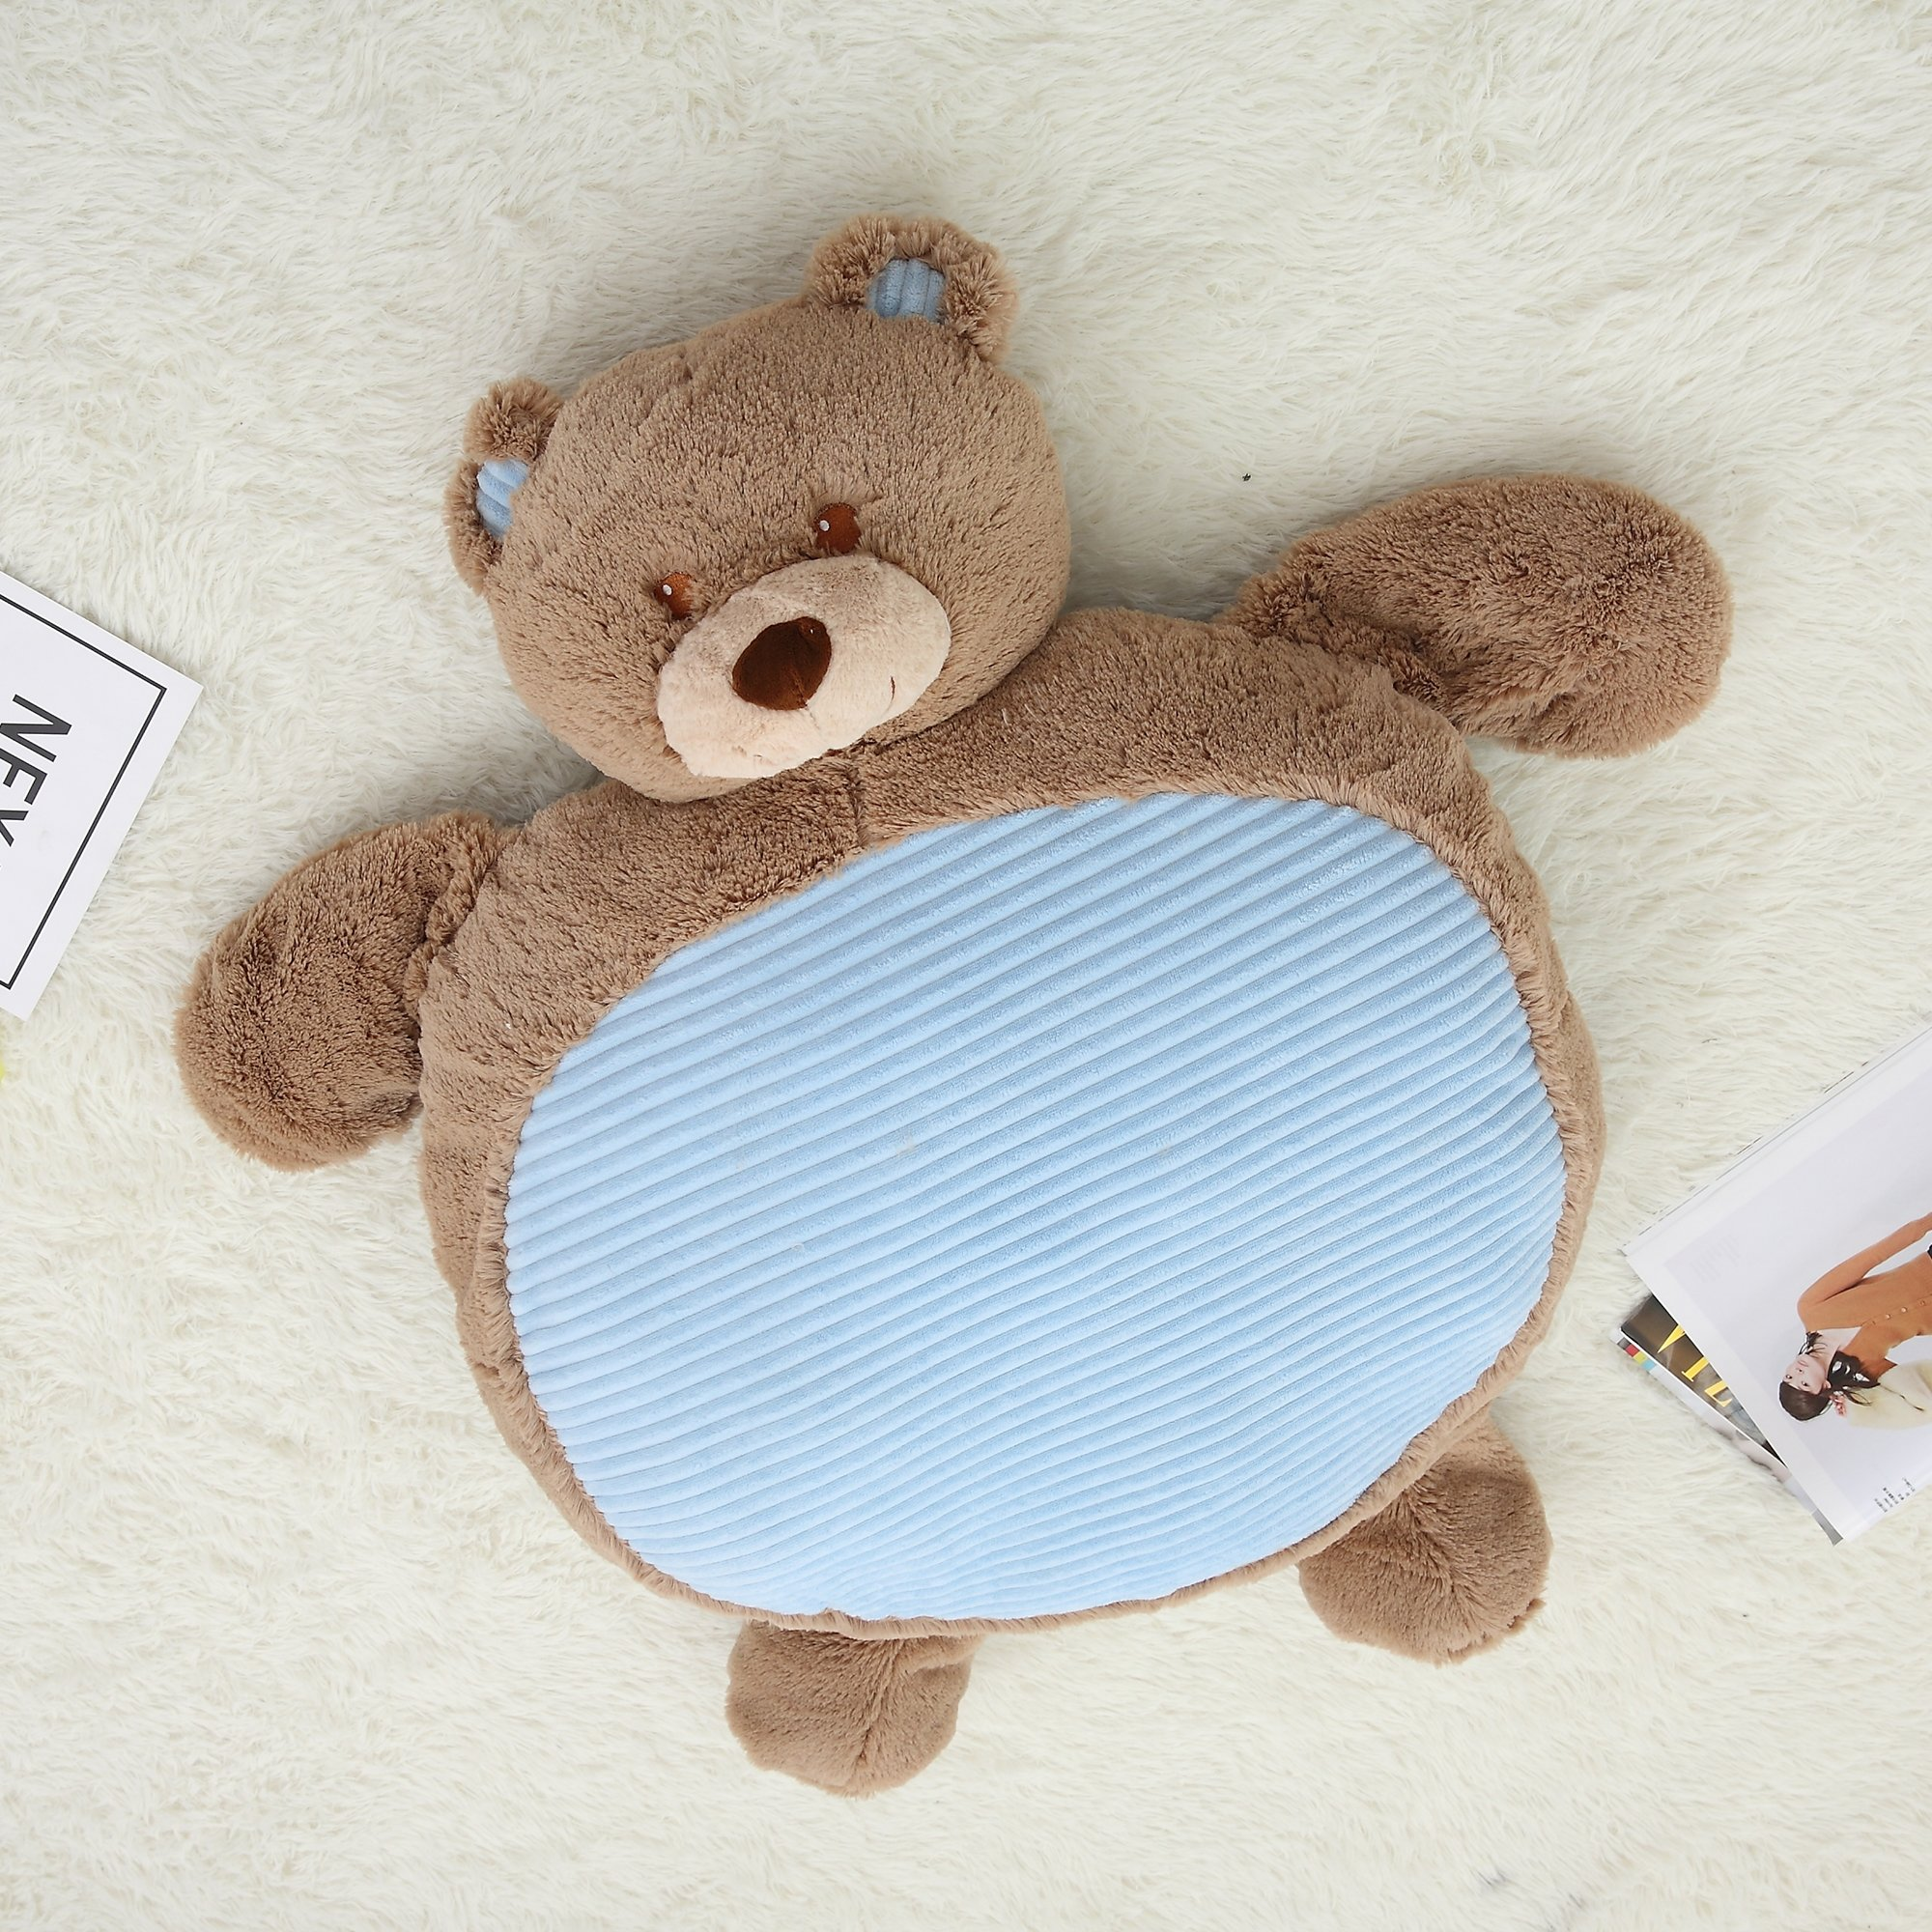 Vercart Cute Cuddly Stuffed Animals Cushions For Your Children Play on The Floor Brown 31x24x5 Inches by VERCART